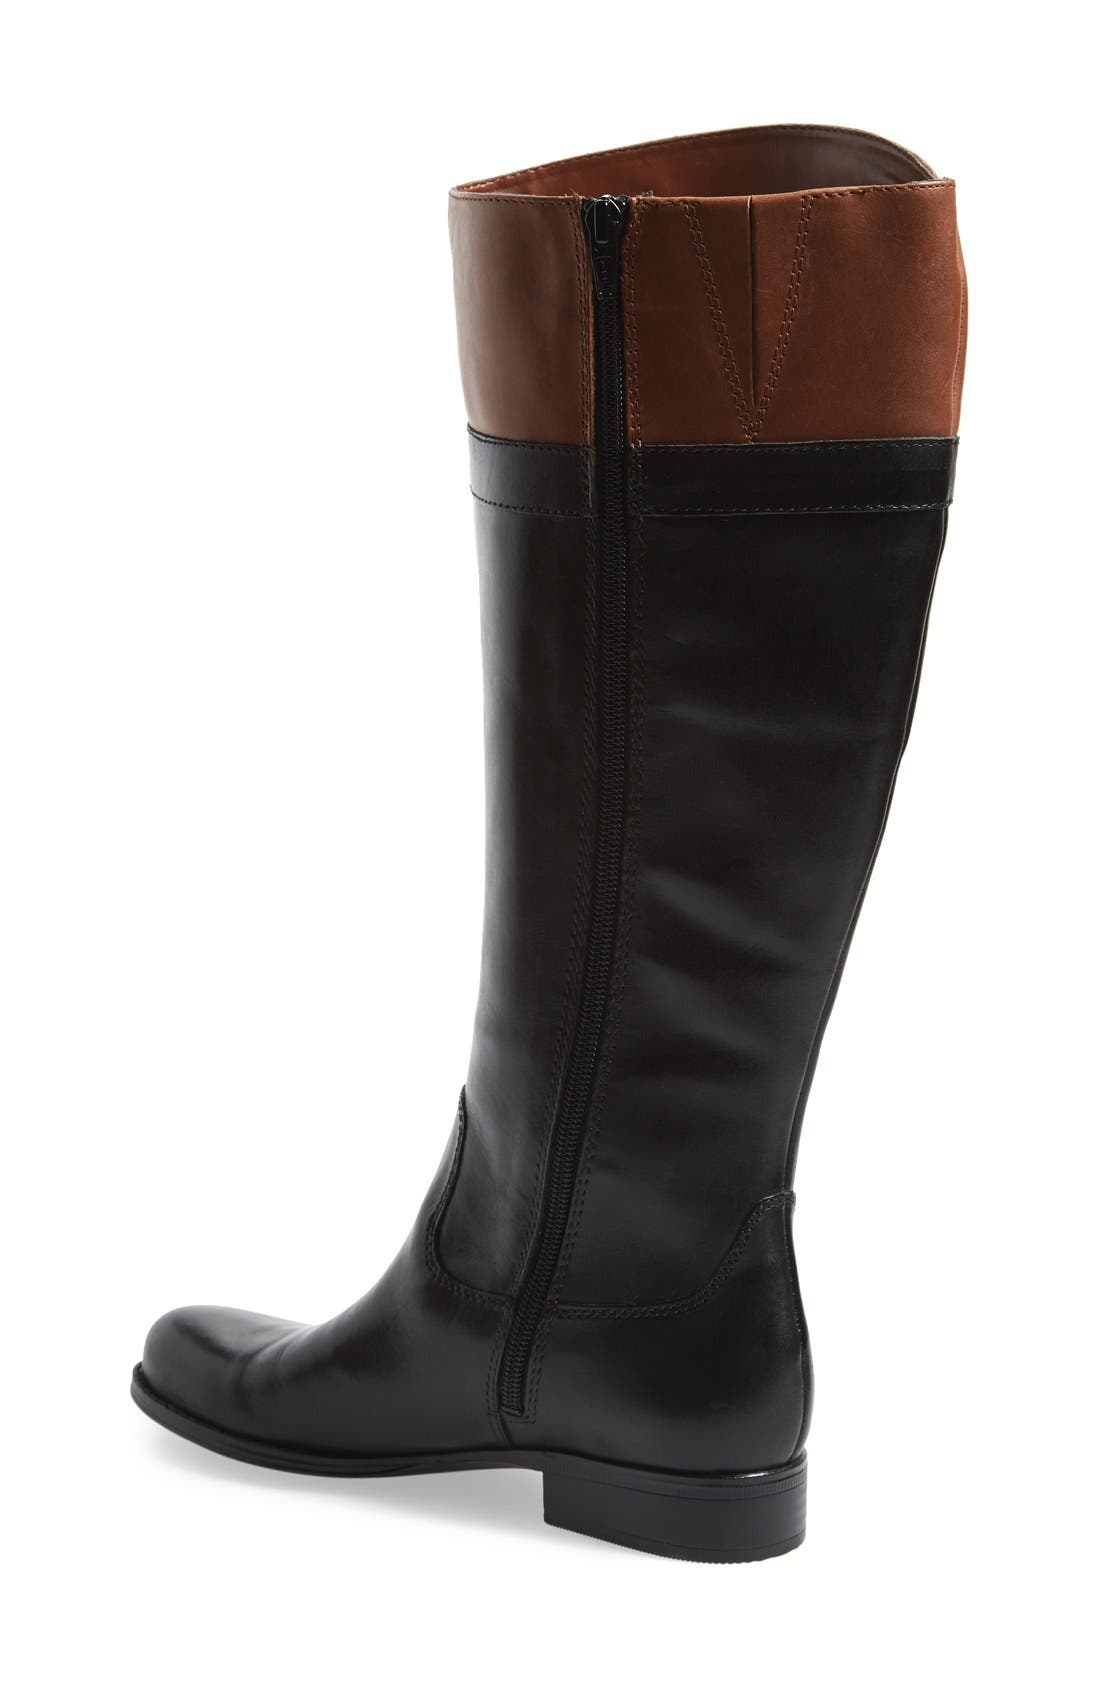 Alternate Image 2  - Naturalizer 'Josette' Knee High Boot (Wide Calf) (Women)